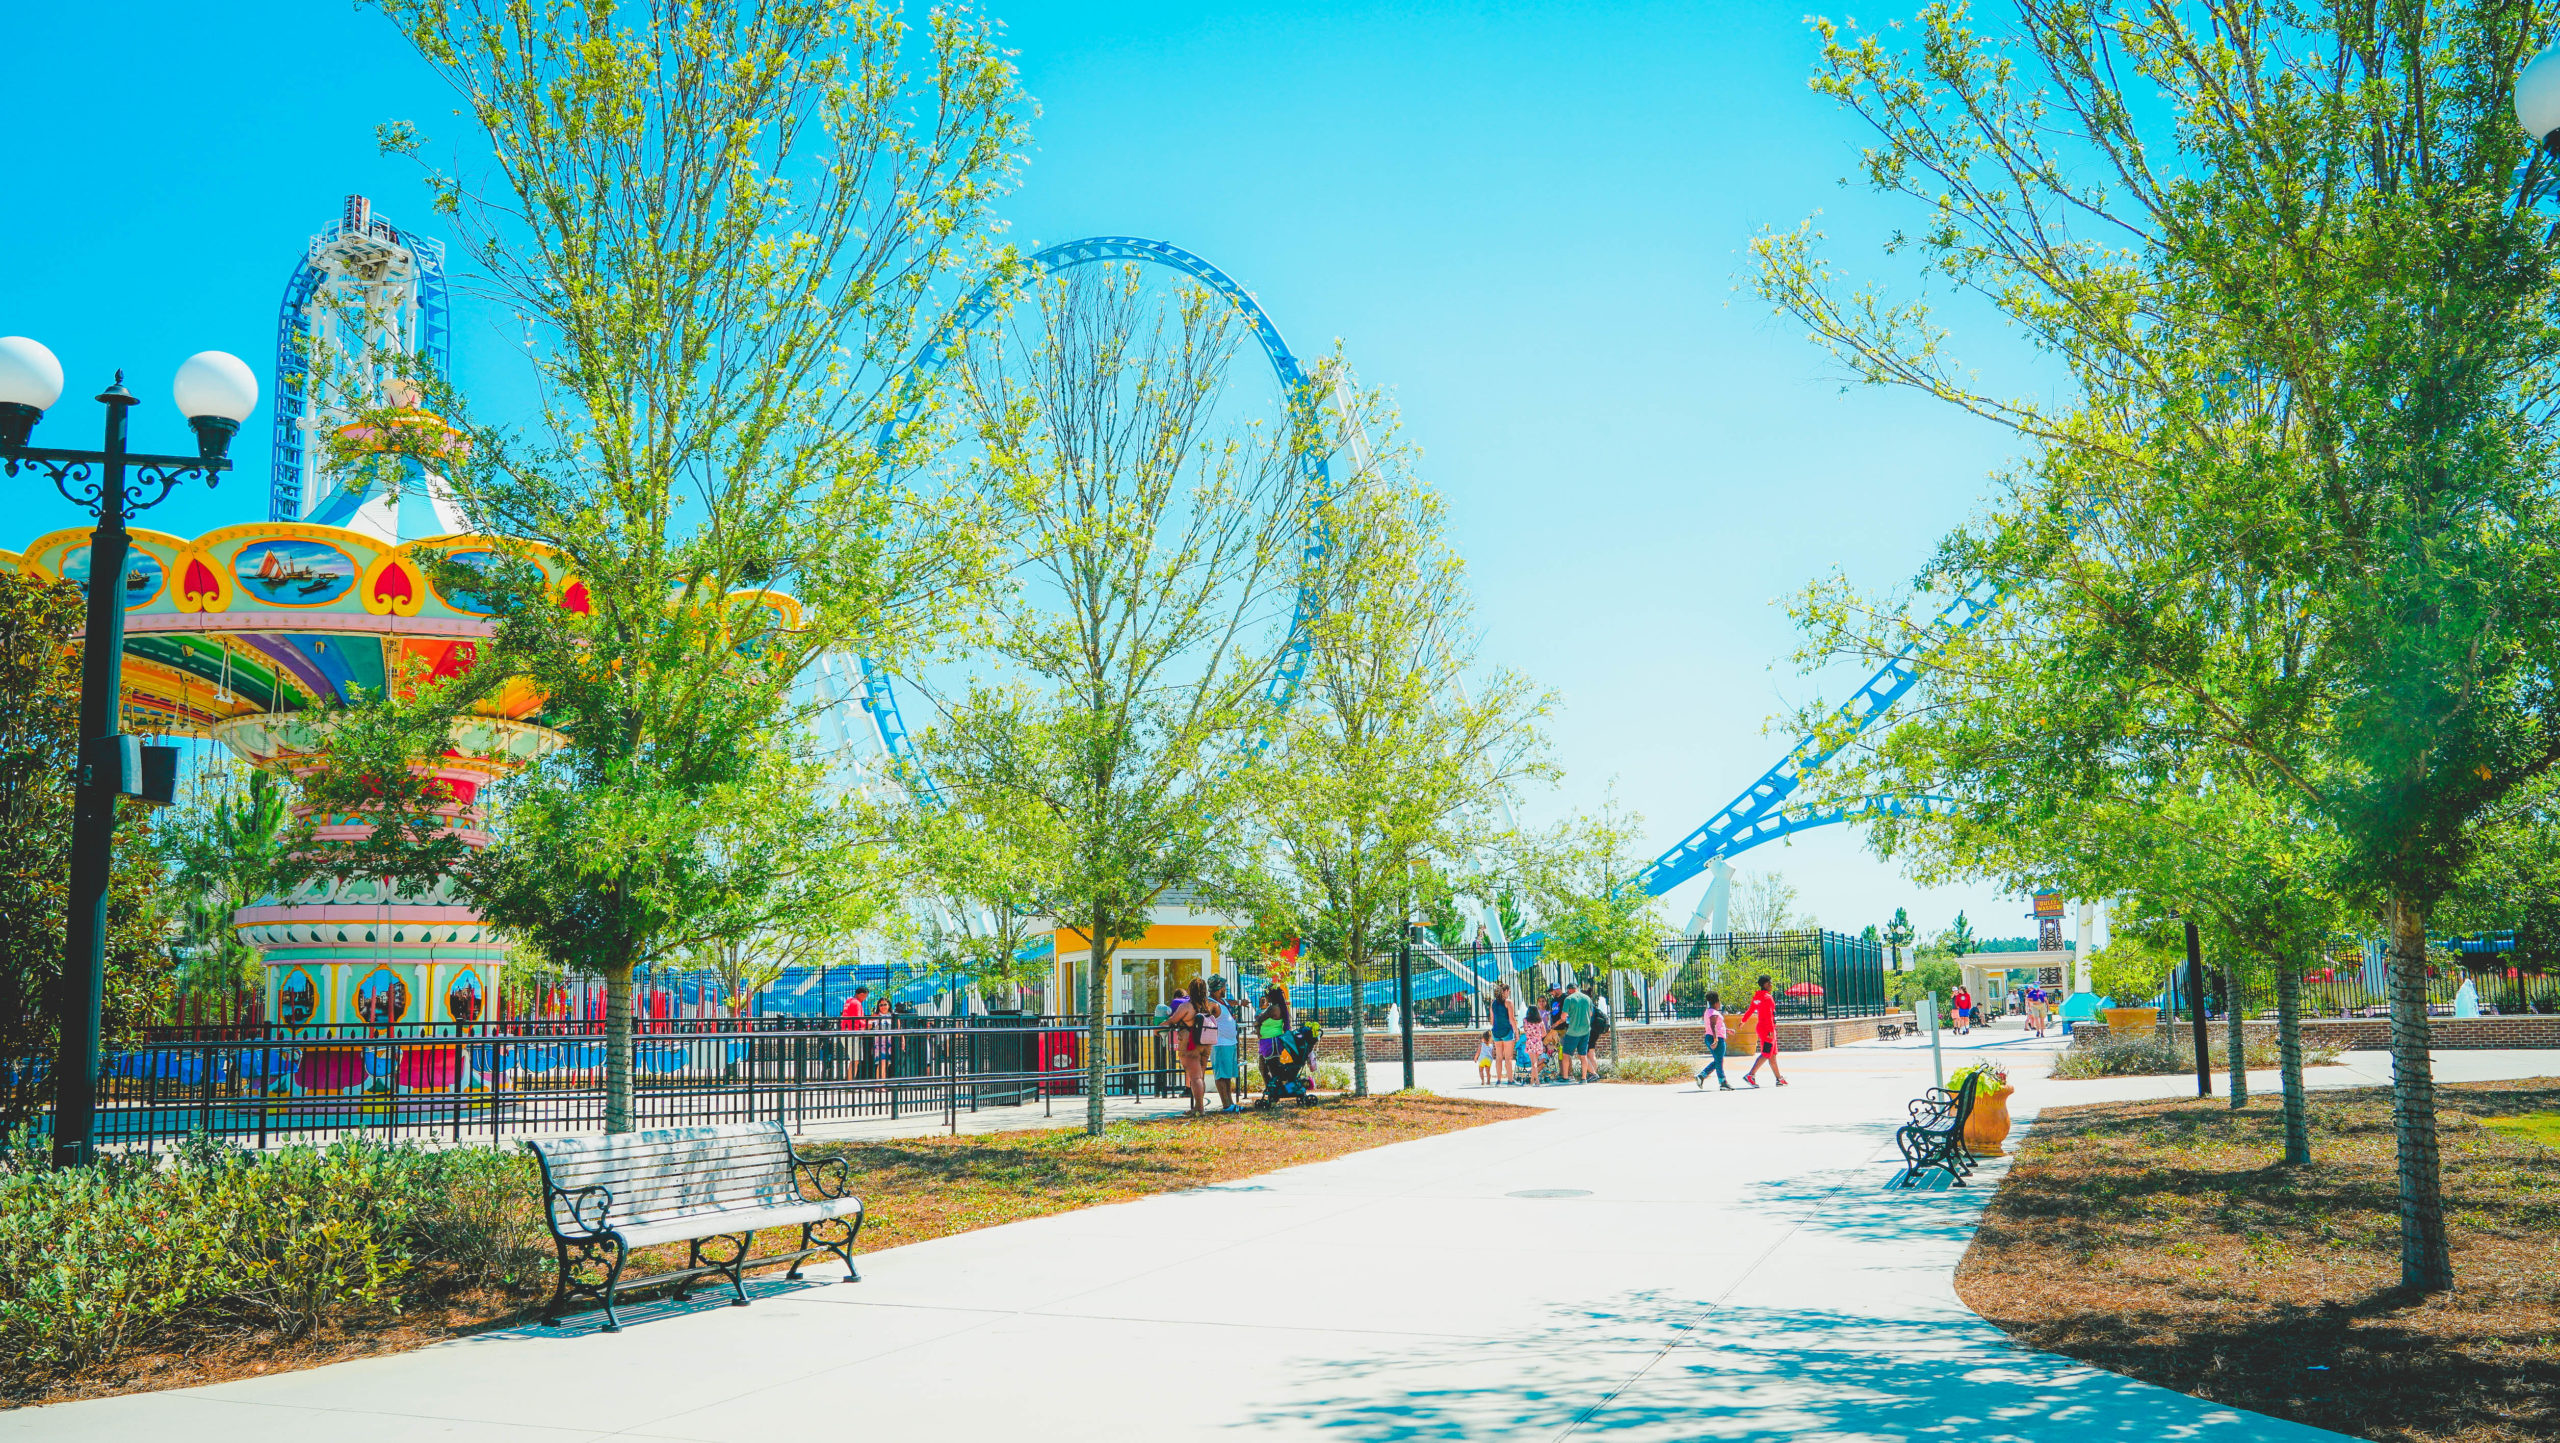 A wide view of The Park at OWA